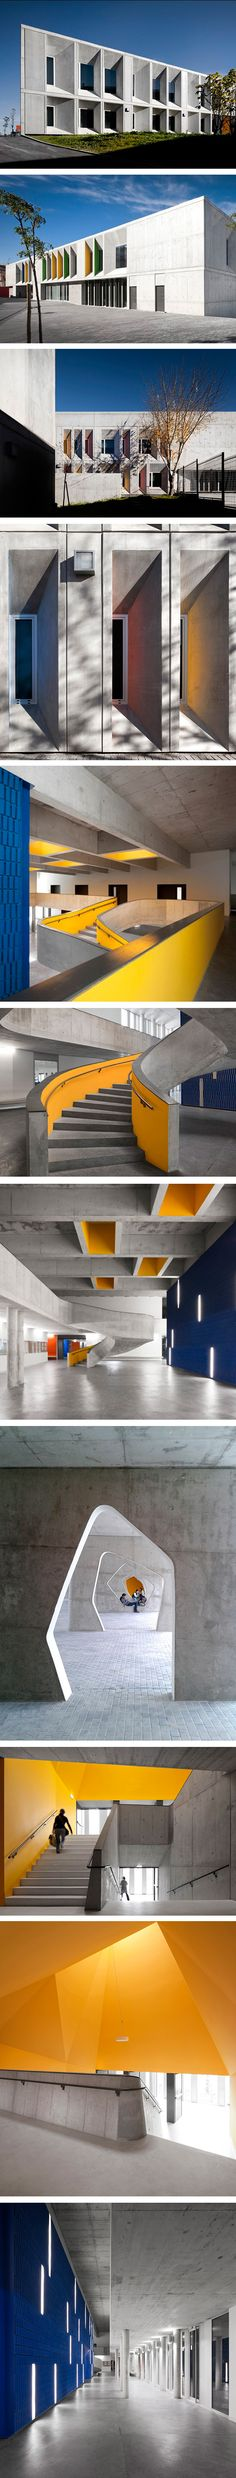 Braamcamp Freire Secondary School by CVDB Architects. It's in Lisbon, Portugal